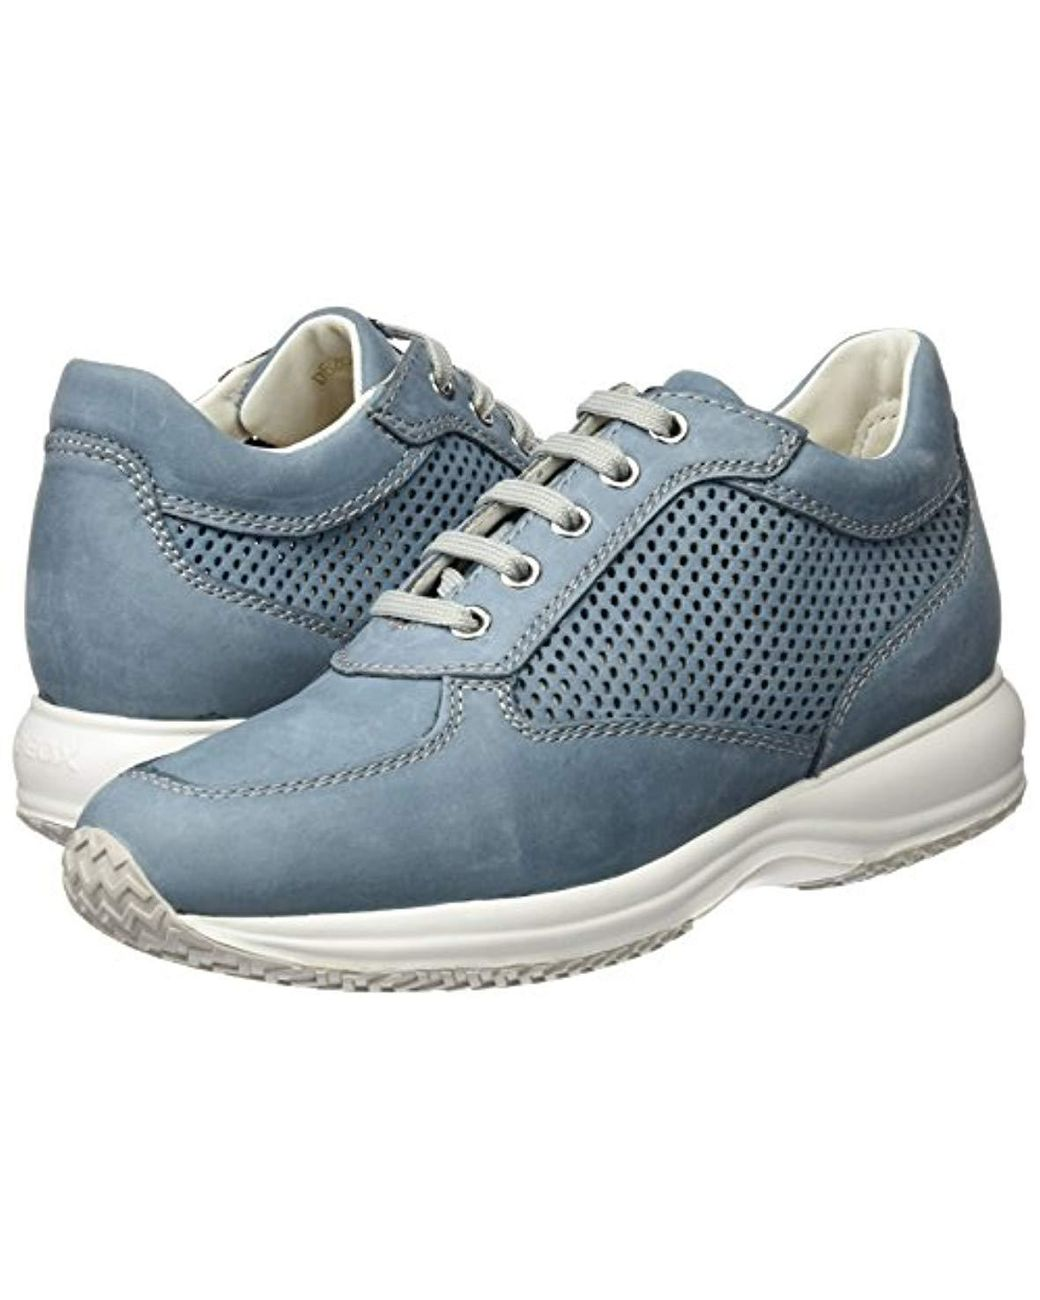 a3c58eb89b1984 Geox D Happy A Low-top Sneakers in Blue - Lyst